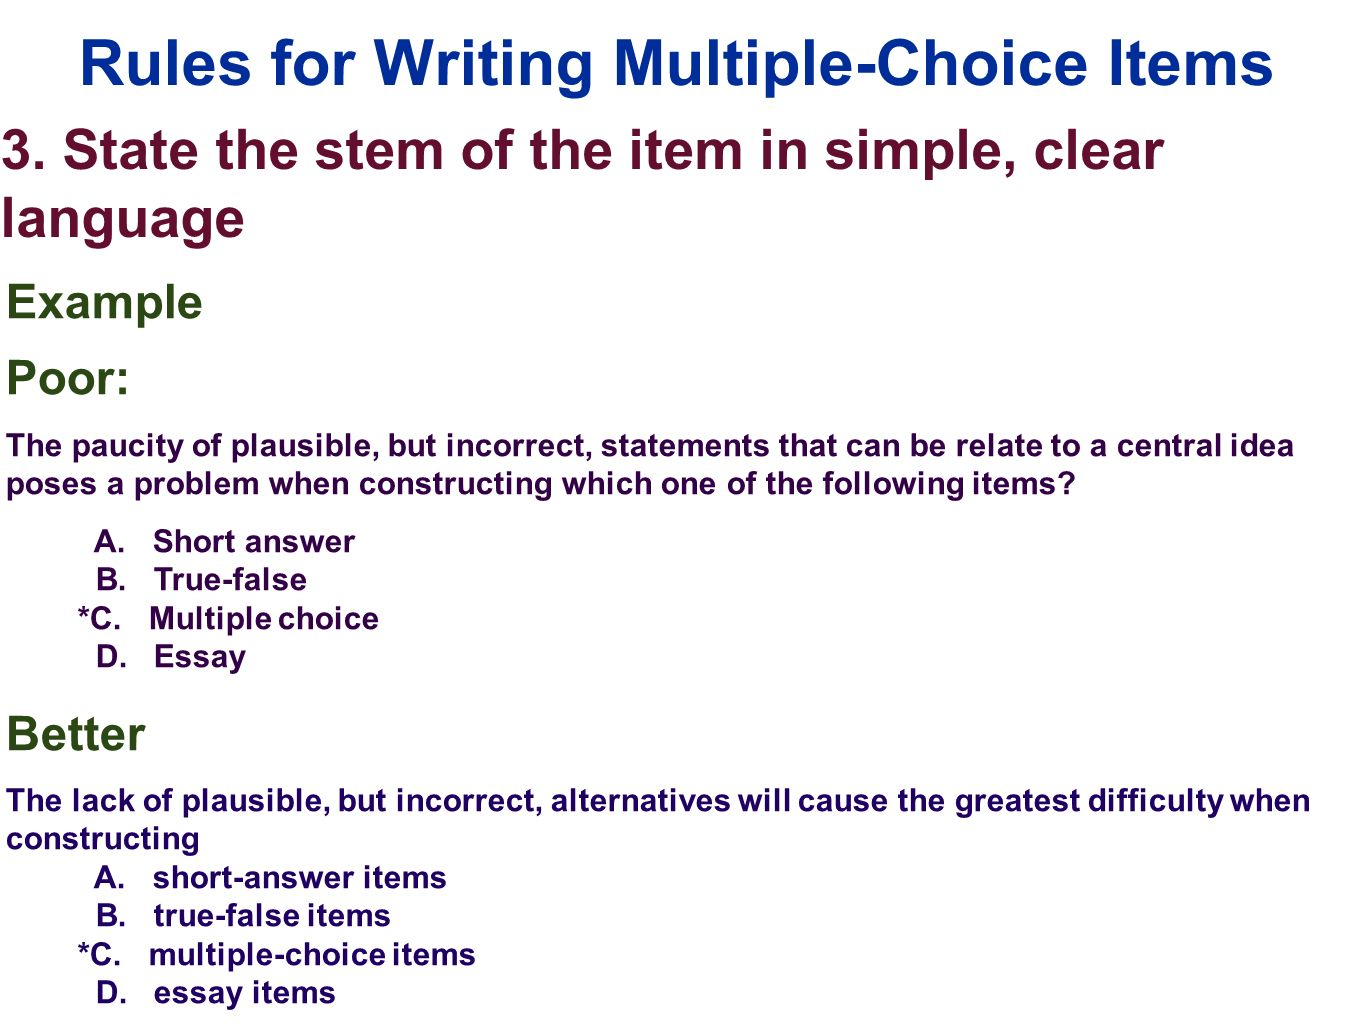 edu session writing selection items multiple choice ppt rules for writing multiple choice items 3